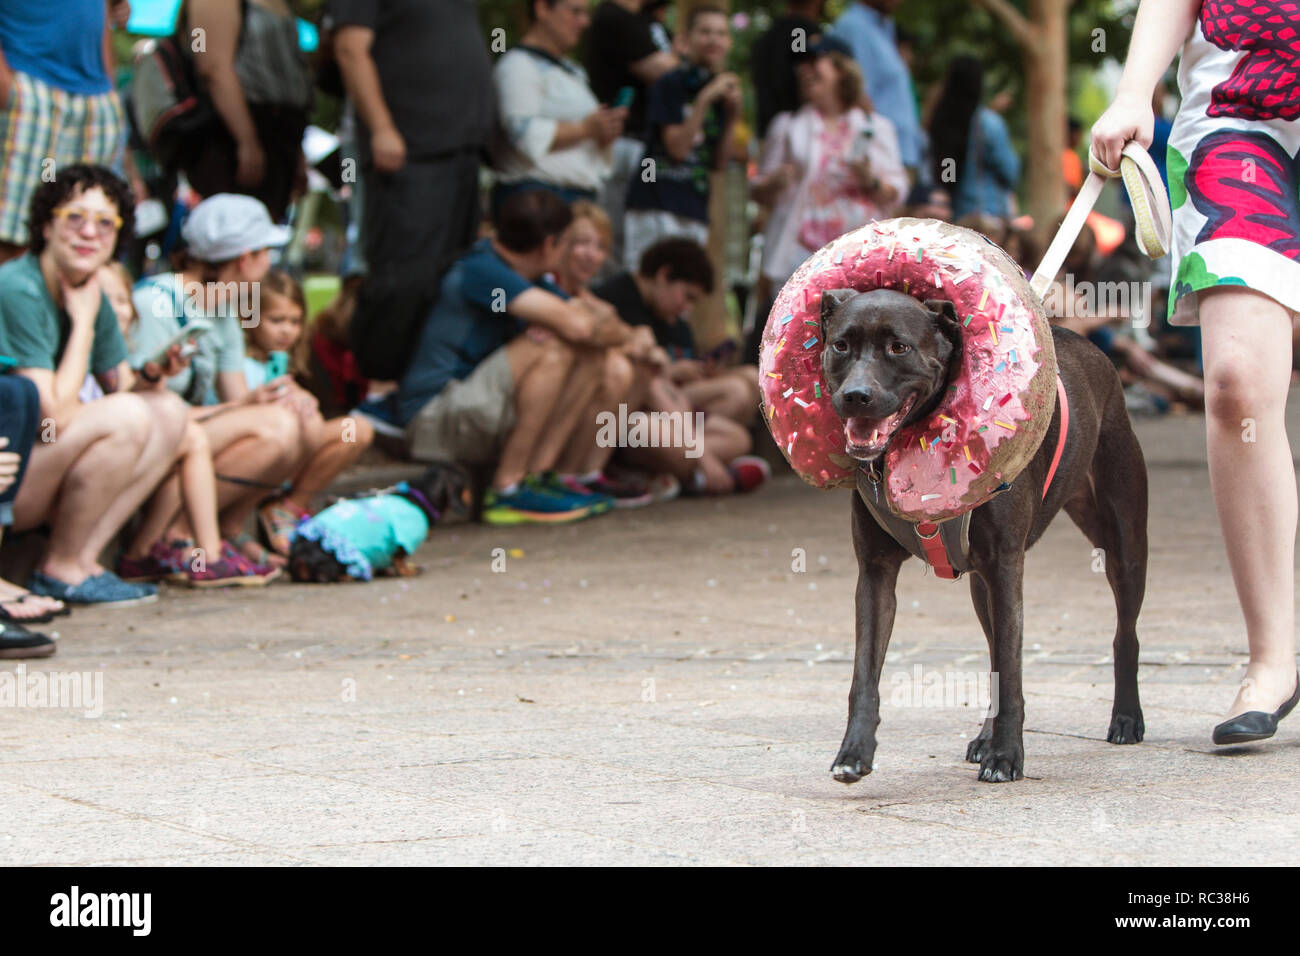 A dog wearing a doughnut costume around his head walks in front of a crowd of spectators at Doggy Con, a dog costume contest in Atlanta, GA. - Stock Image